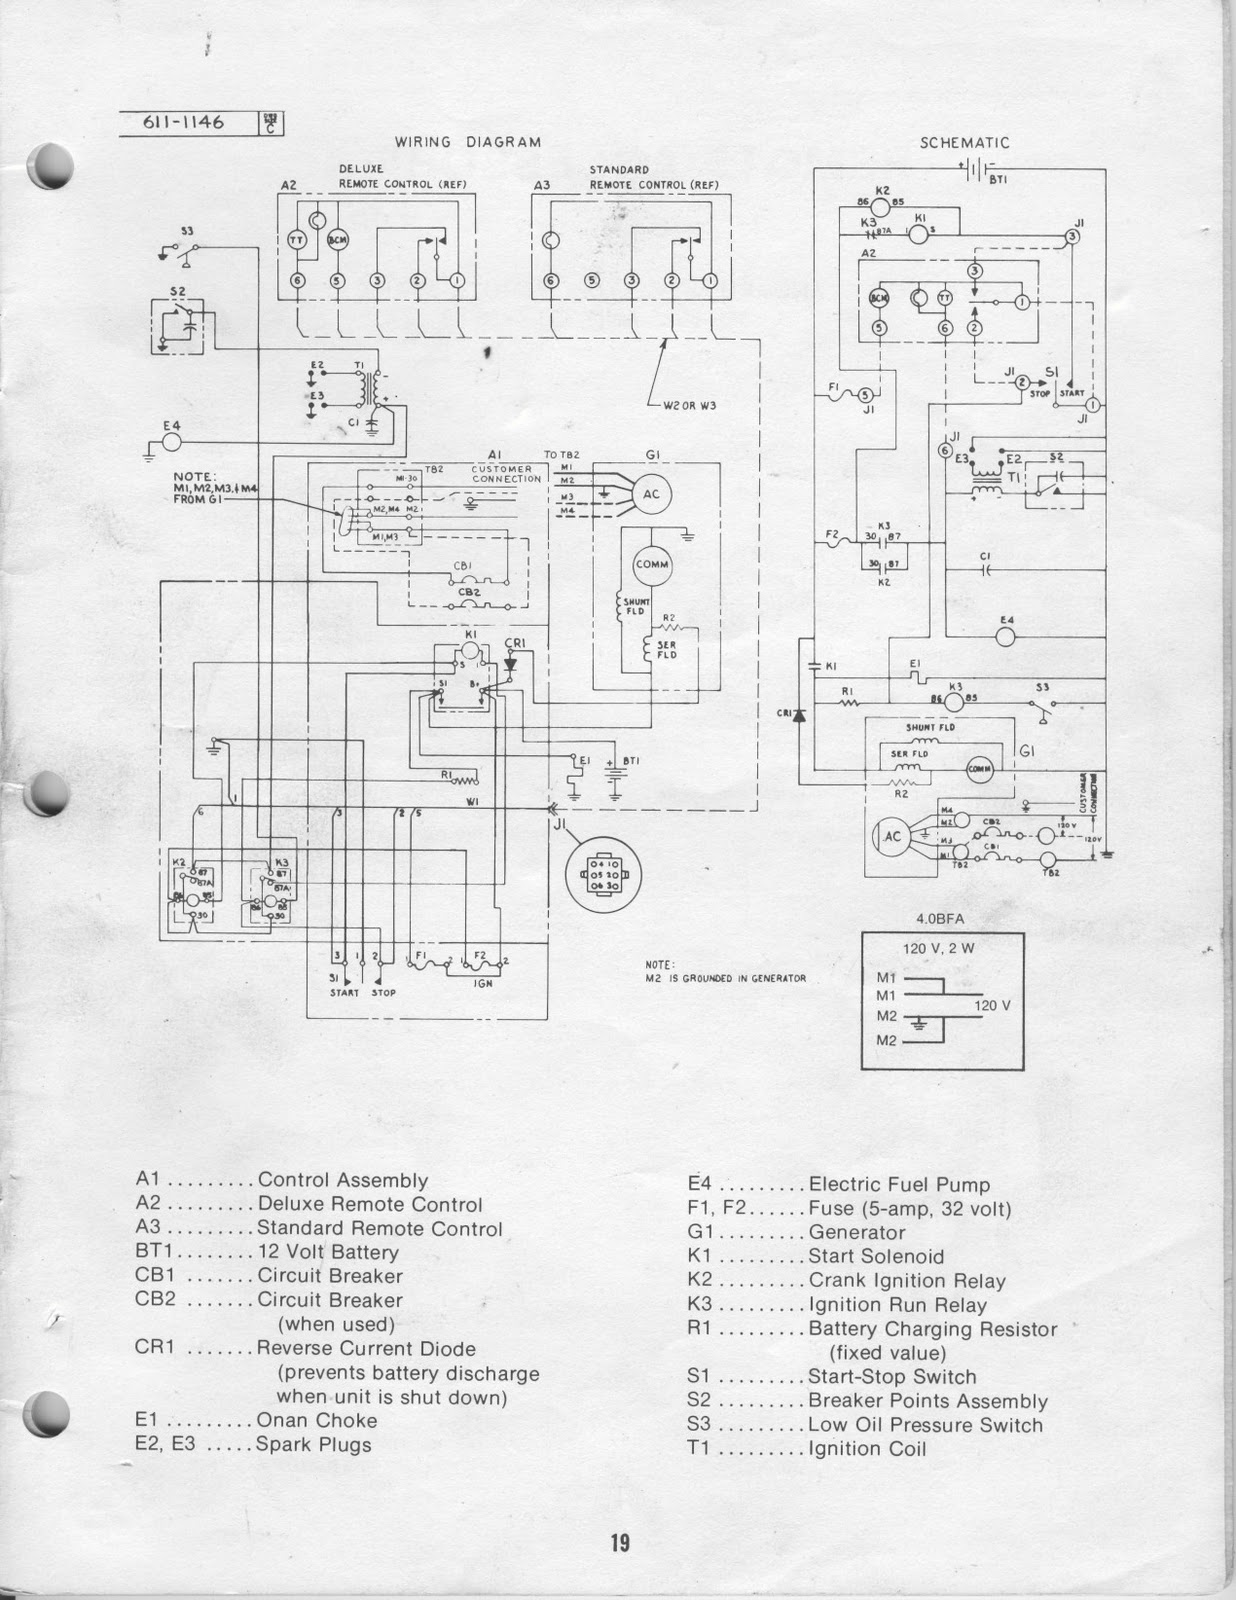 onan+4kw+bfa+owners+manual0001 021 1983 fleetwood pace arrow owners manuals onan 4 0 kw bfa genset wiring diagram for onan rv generator at readyjetset.co